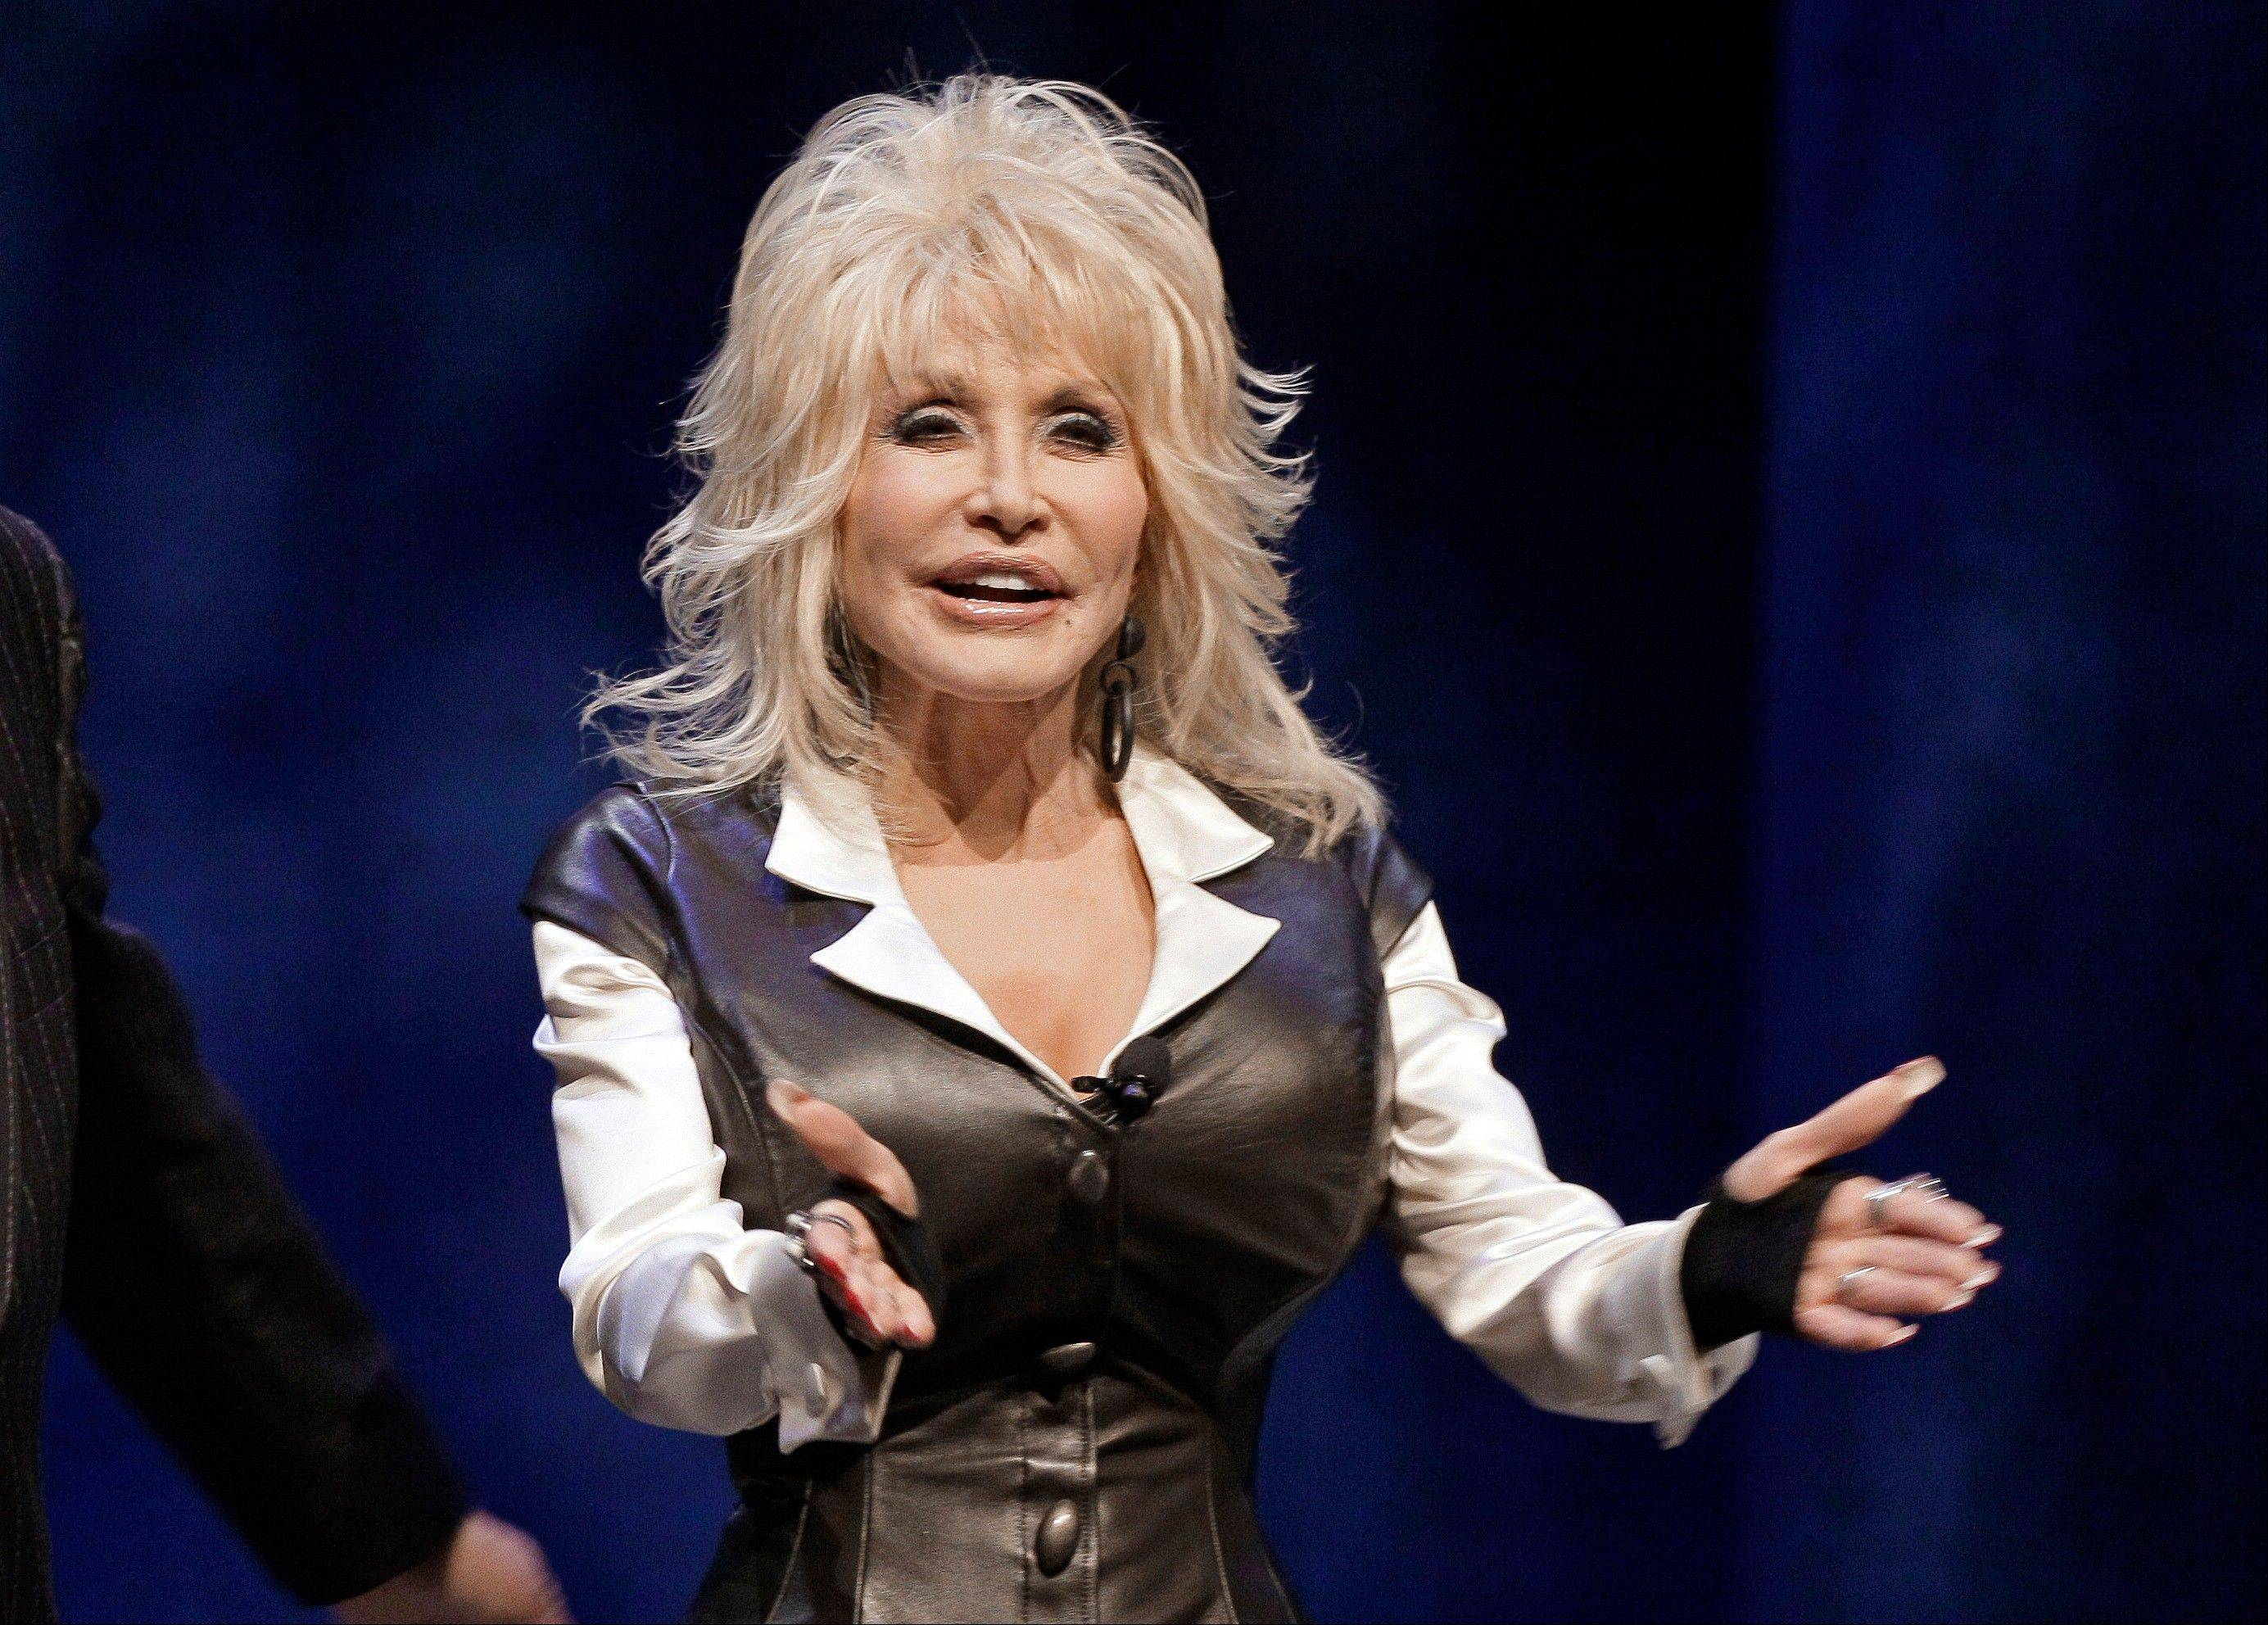 Dolly Parton was treated and released at a Nashville, Tenn., hospital Monday after a car she was riding in was involved in an accident.